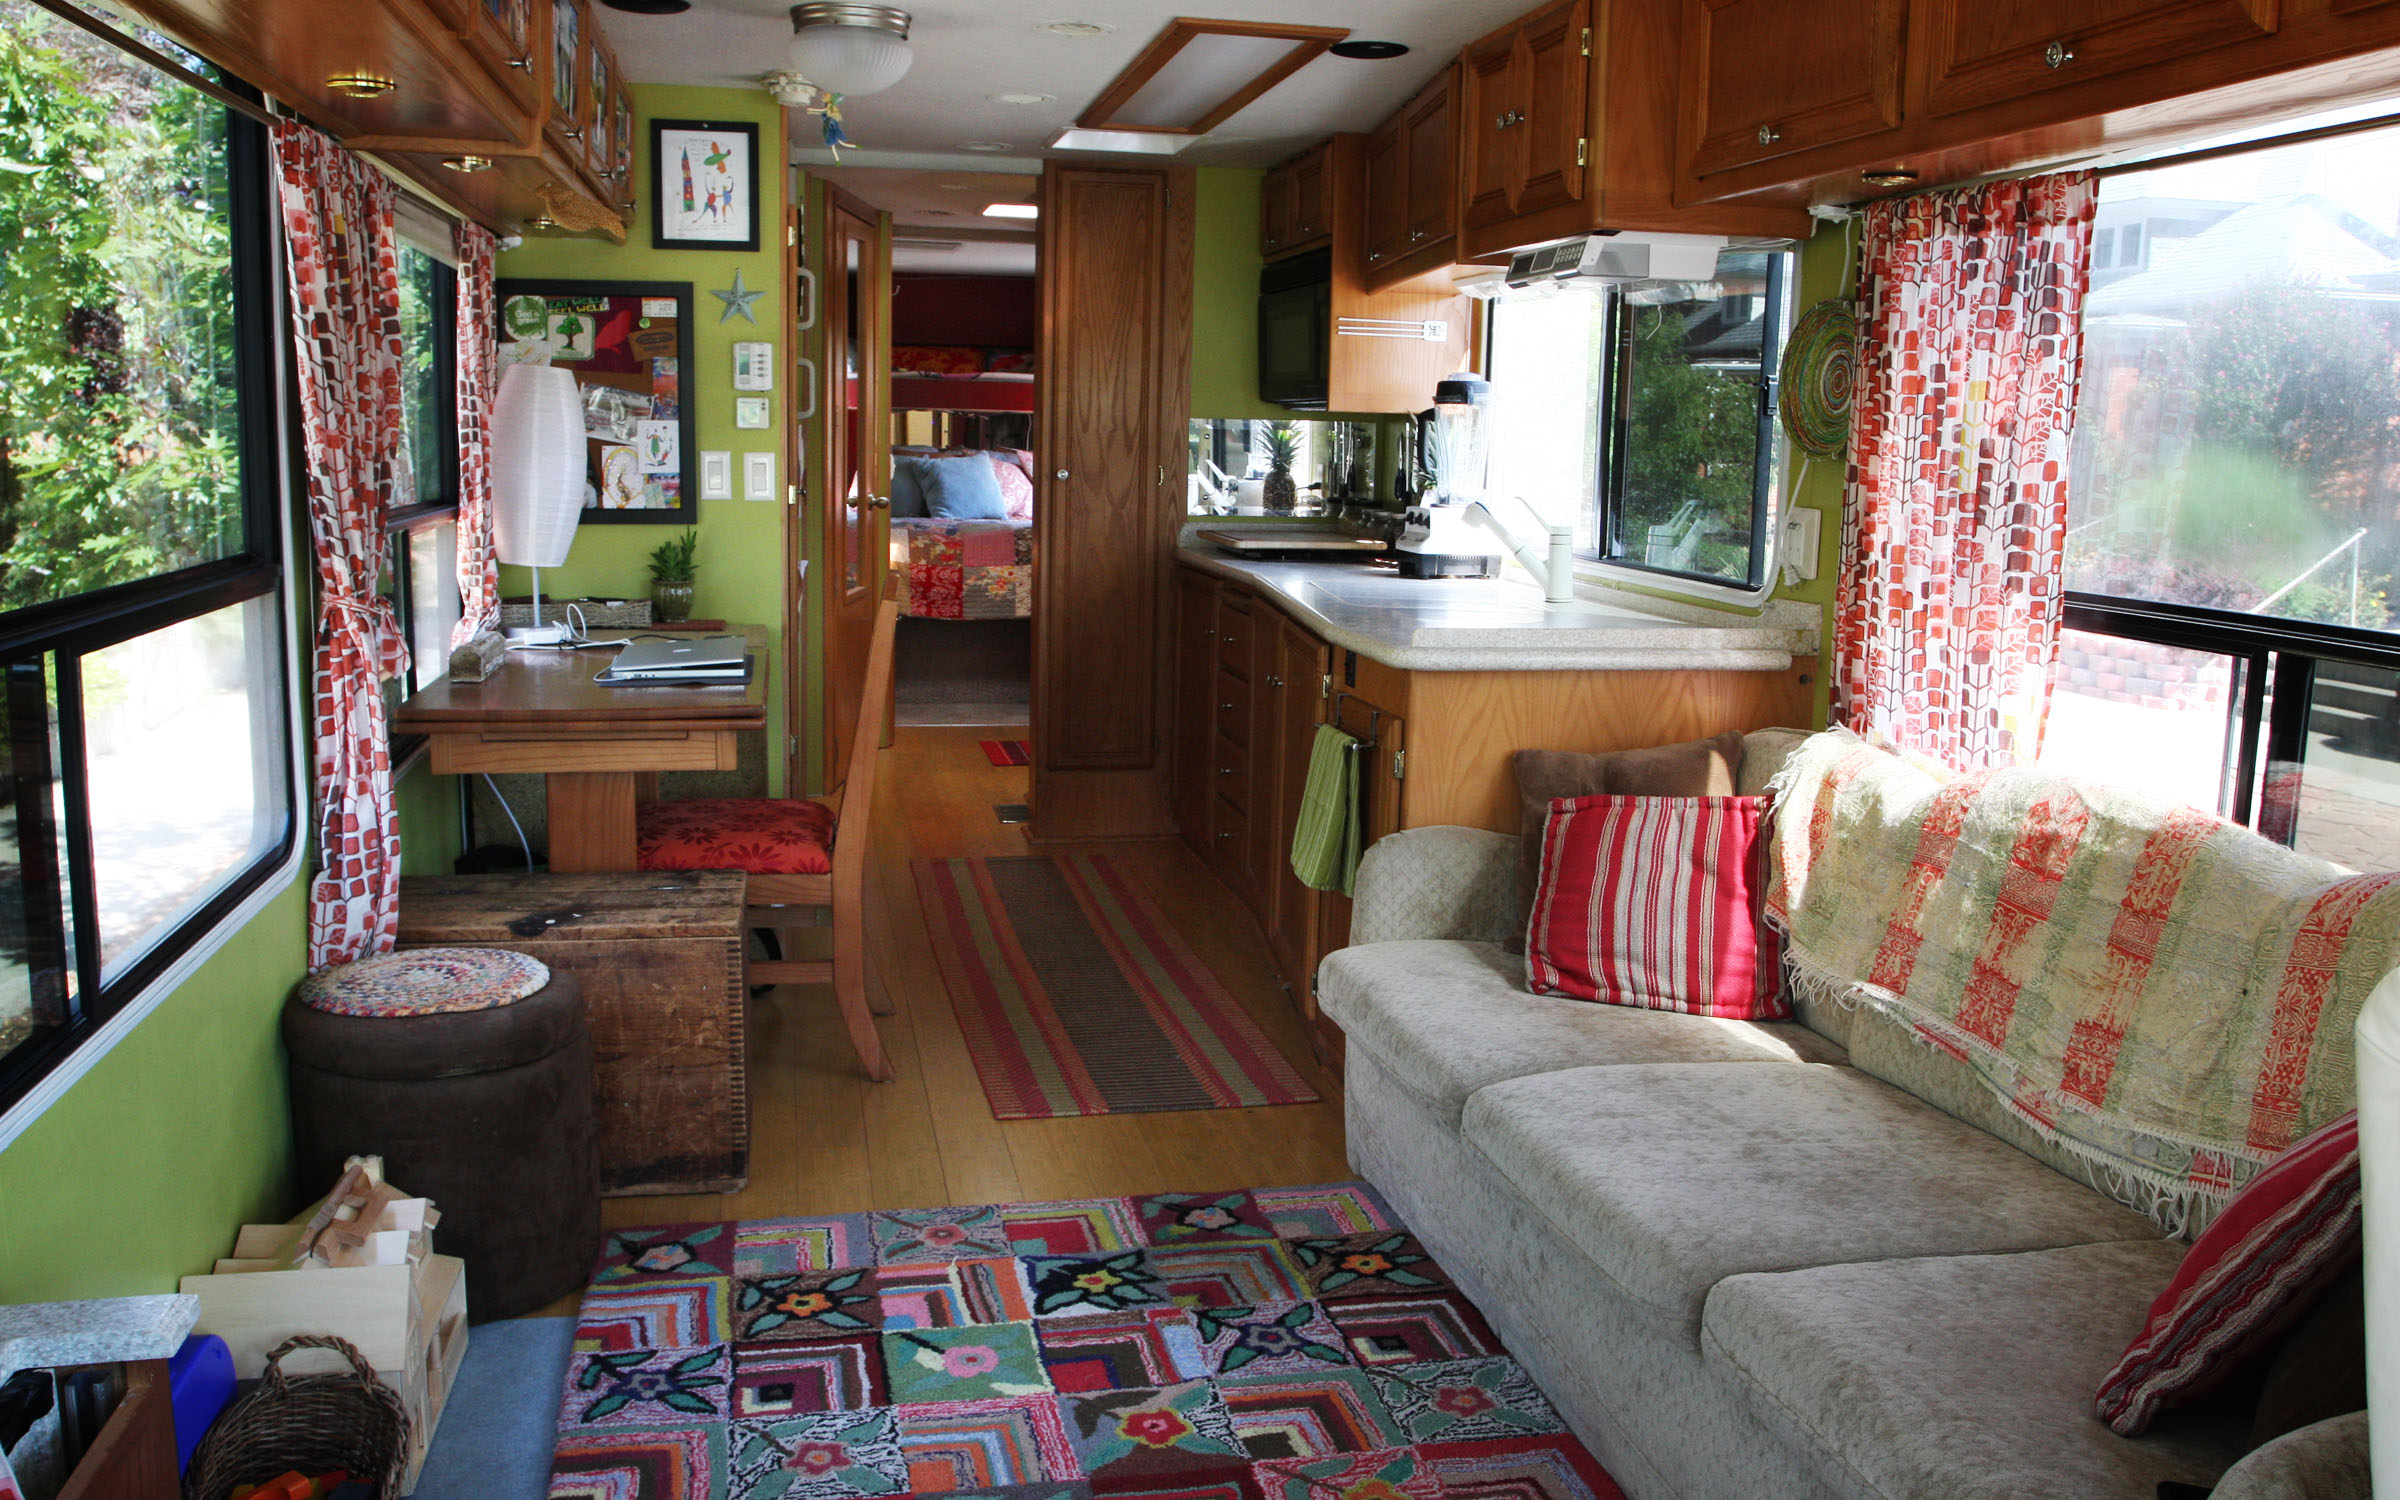 02_Our New RV Living Area.jpg